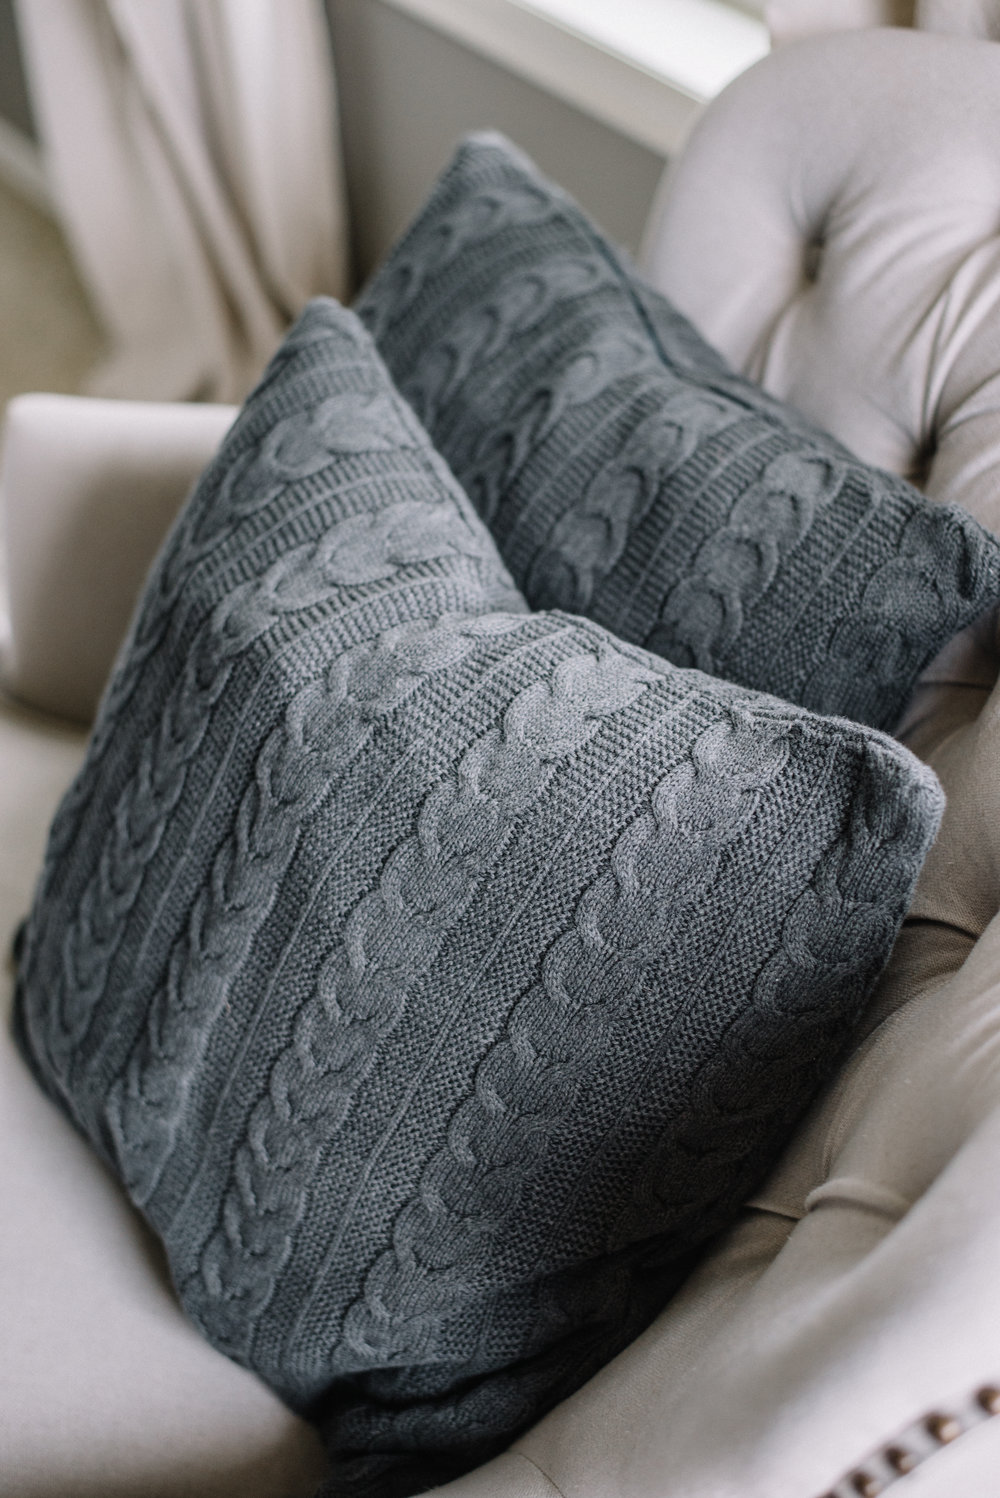 Sweater Pillows from Boll & Branch